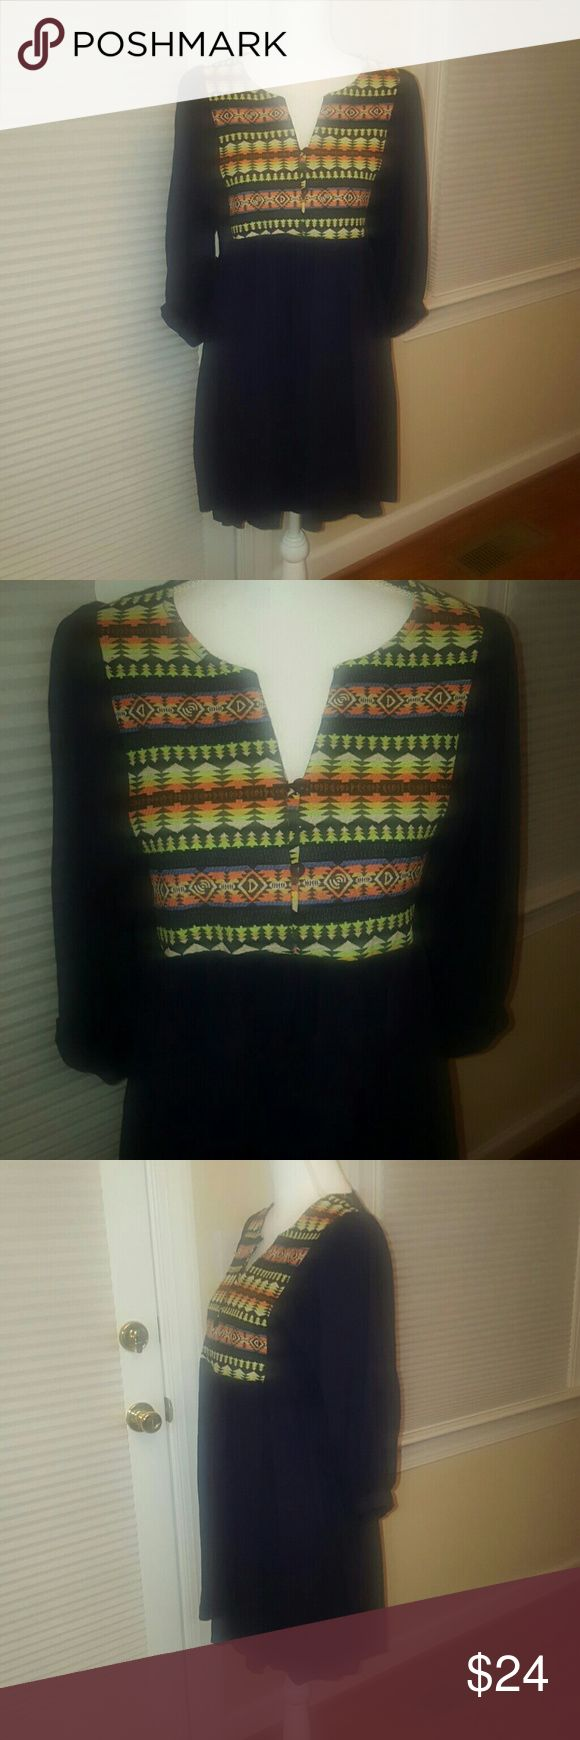 NEW Umgee boho Aztec dress Small New with tags Umgee Aztec print black cotton dress.  Beautiful, would be so fun for any occasion! Umgee Dresses Mini